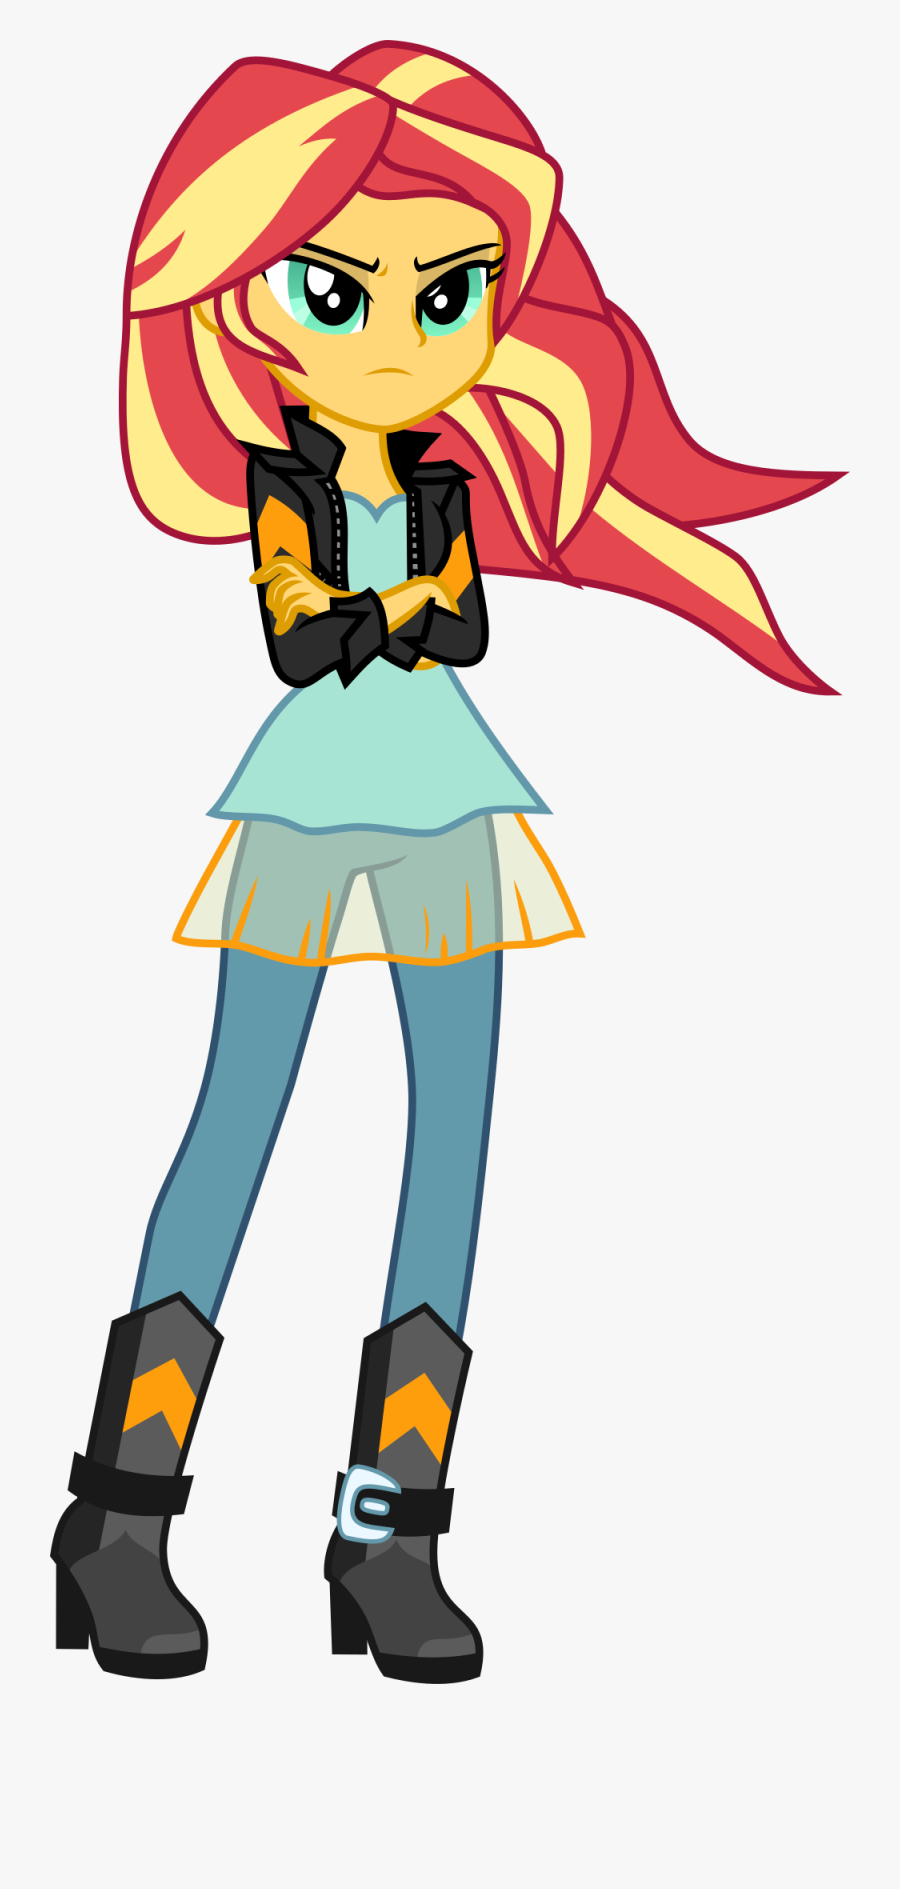 Artist Uponia Boots Clothes Crossed Arms - Friendship Games My Little Pony Equestria Girl Sunset, Transparent Clipart